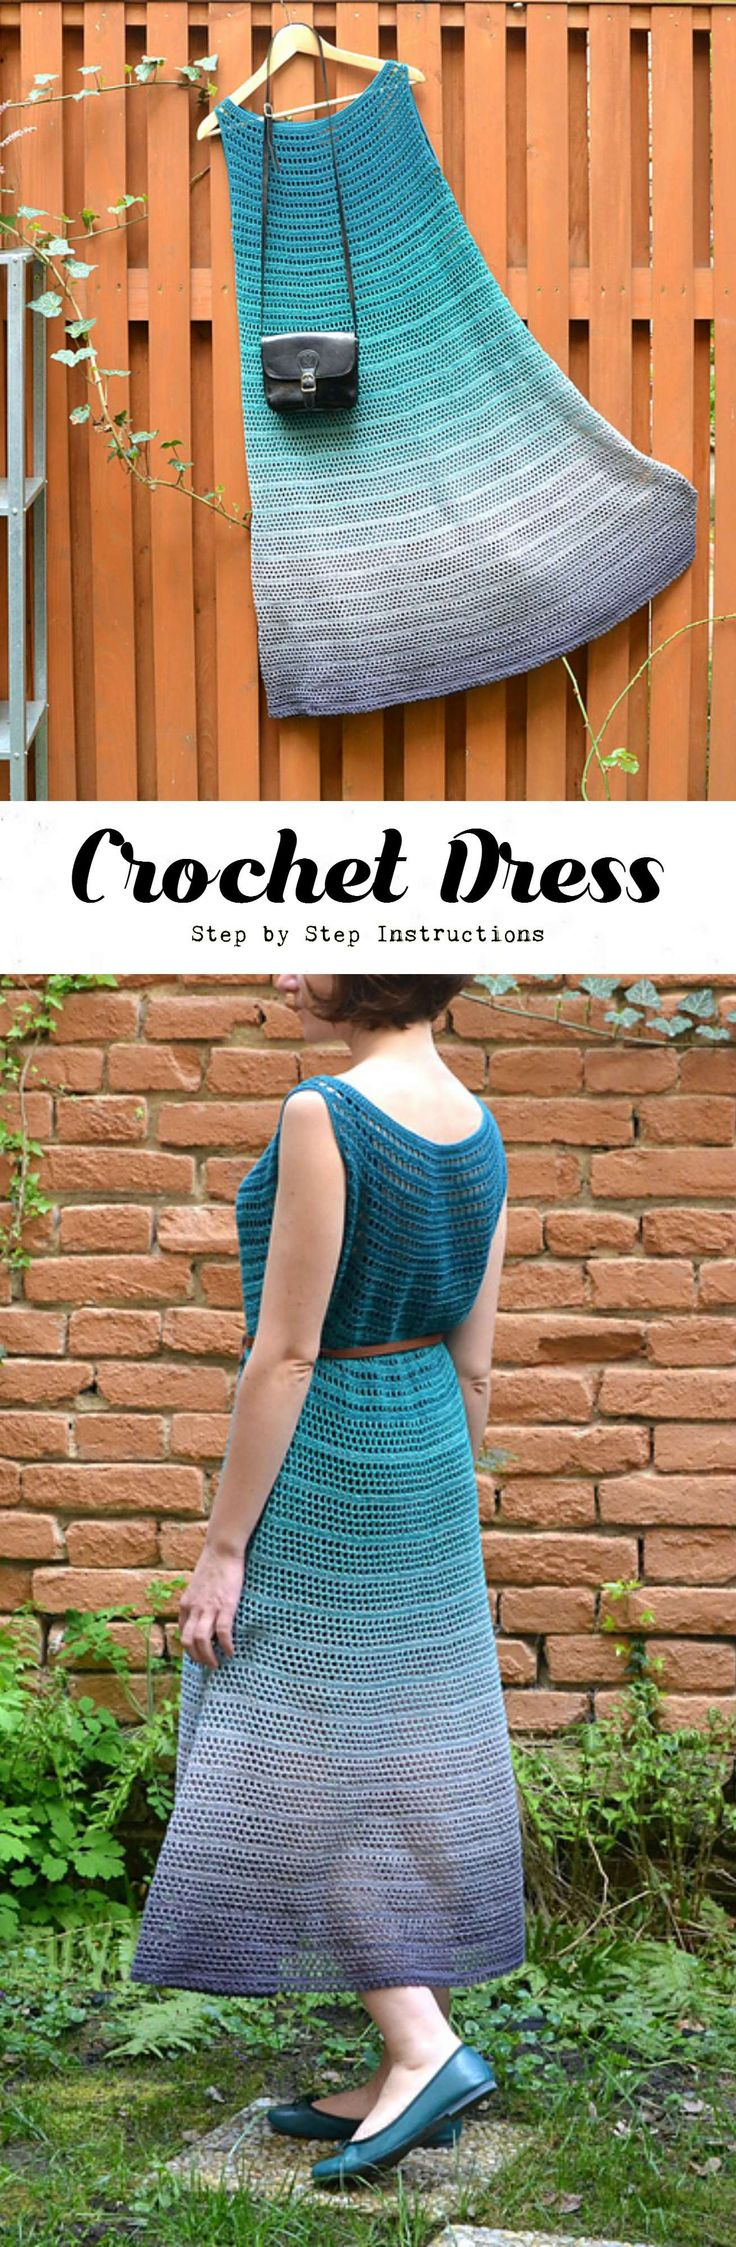 Crochet Nori Dress